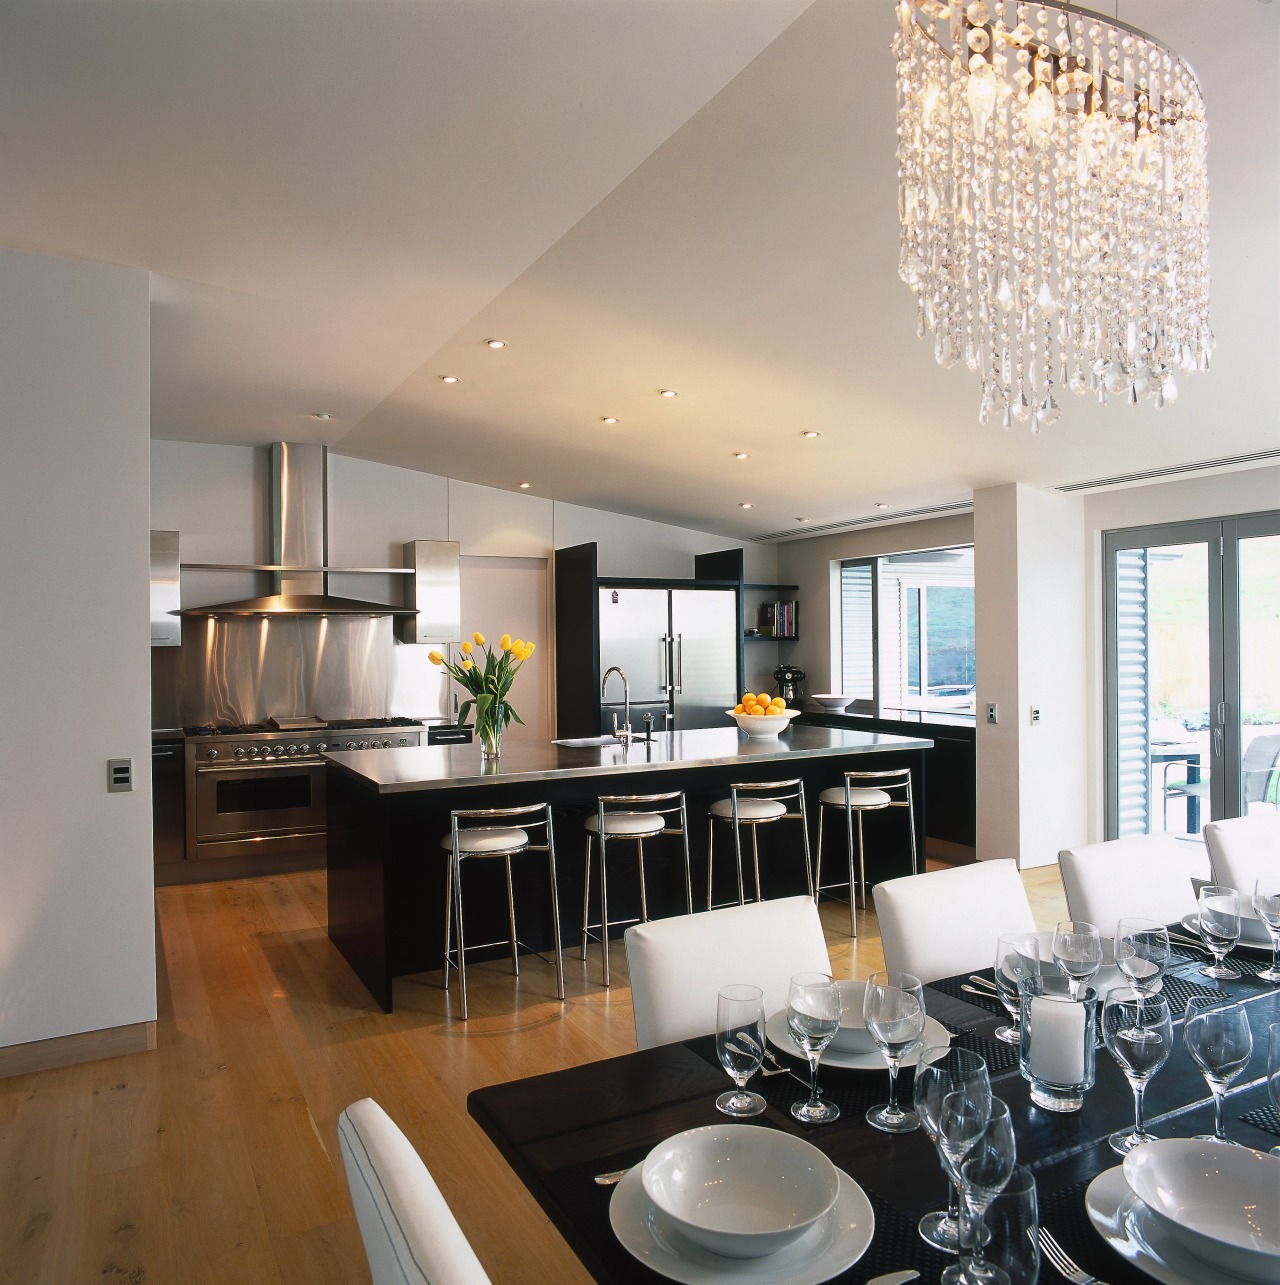 view of the open plan kitchen and dining ceiling, countertop, dining room, interior design, kitchen, real estate, gray